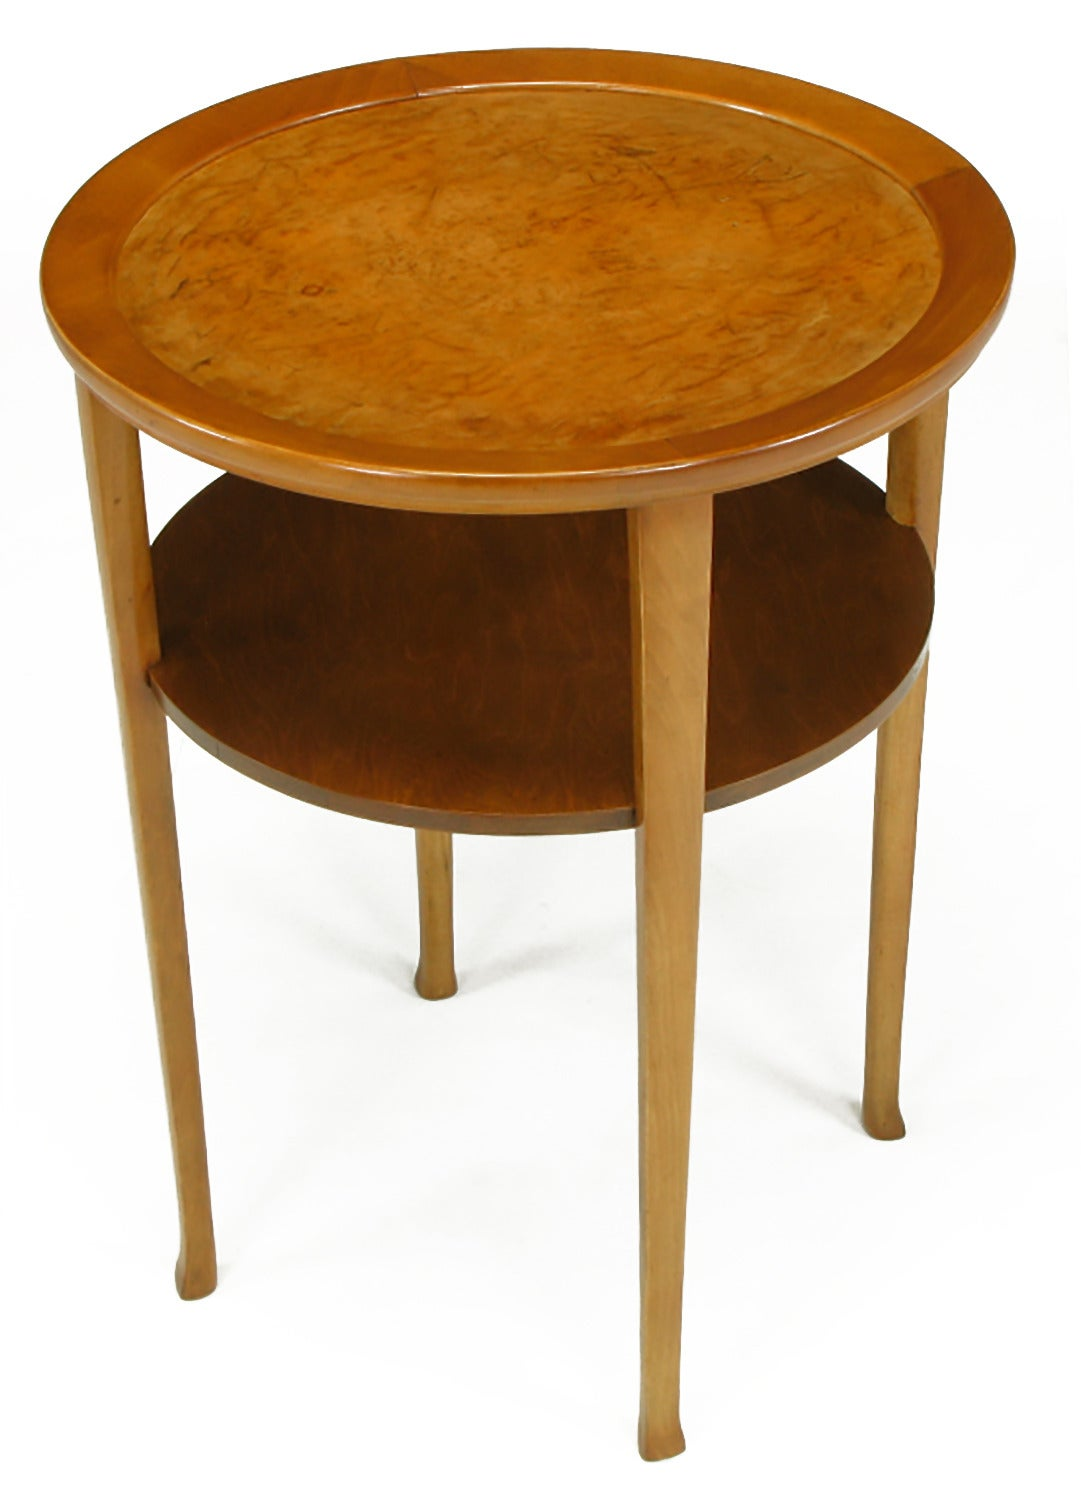 1940s Round Two-Tier Maple Side Table with Buffalo Leather Inlay In Good Condition For Sale In Chicago, IL